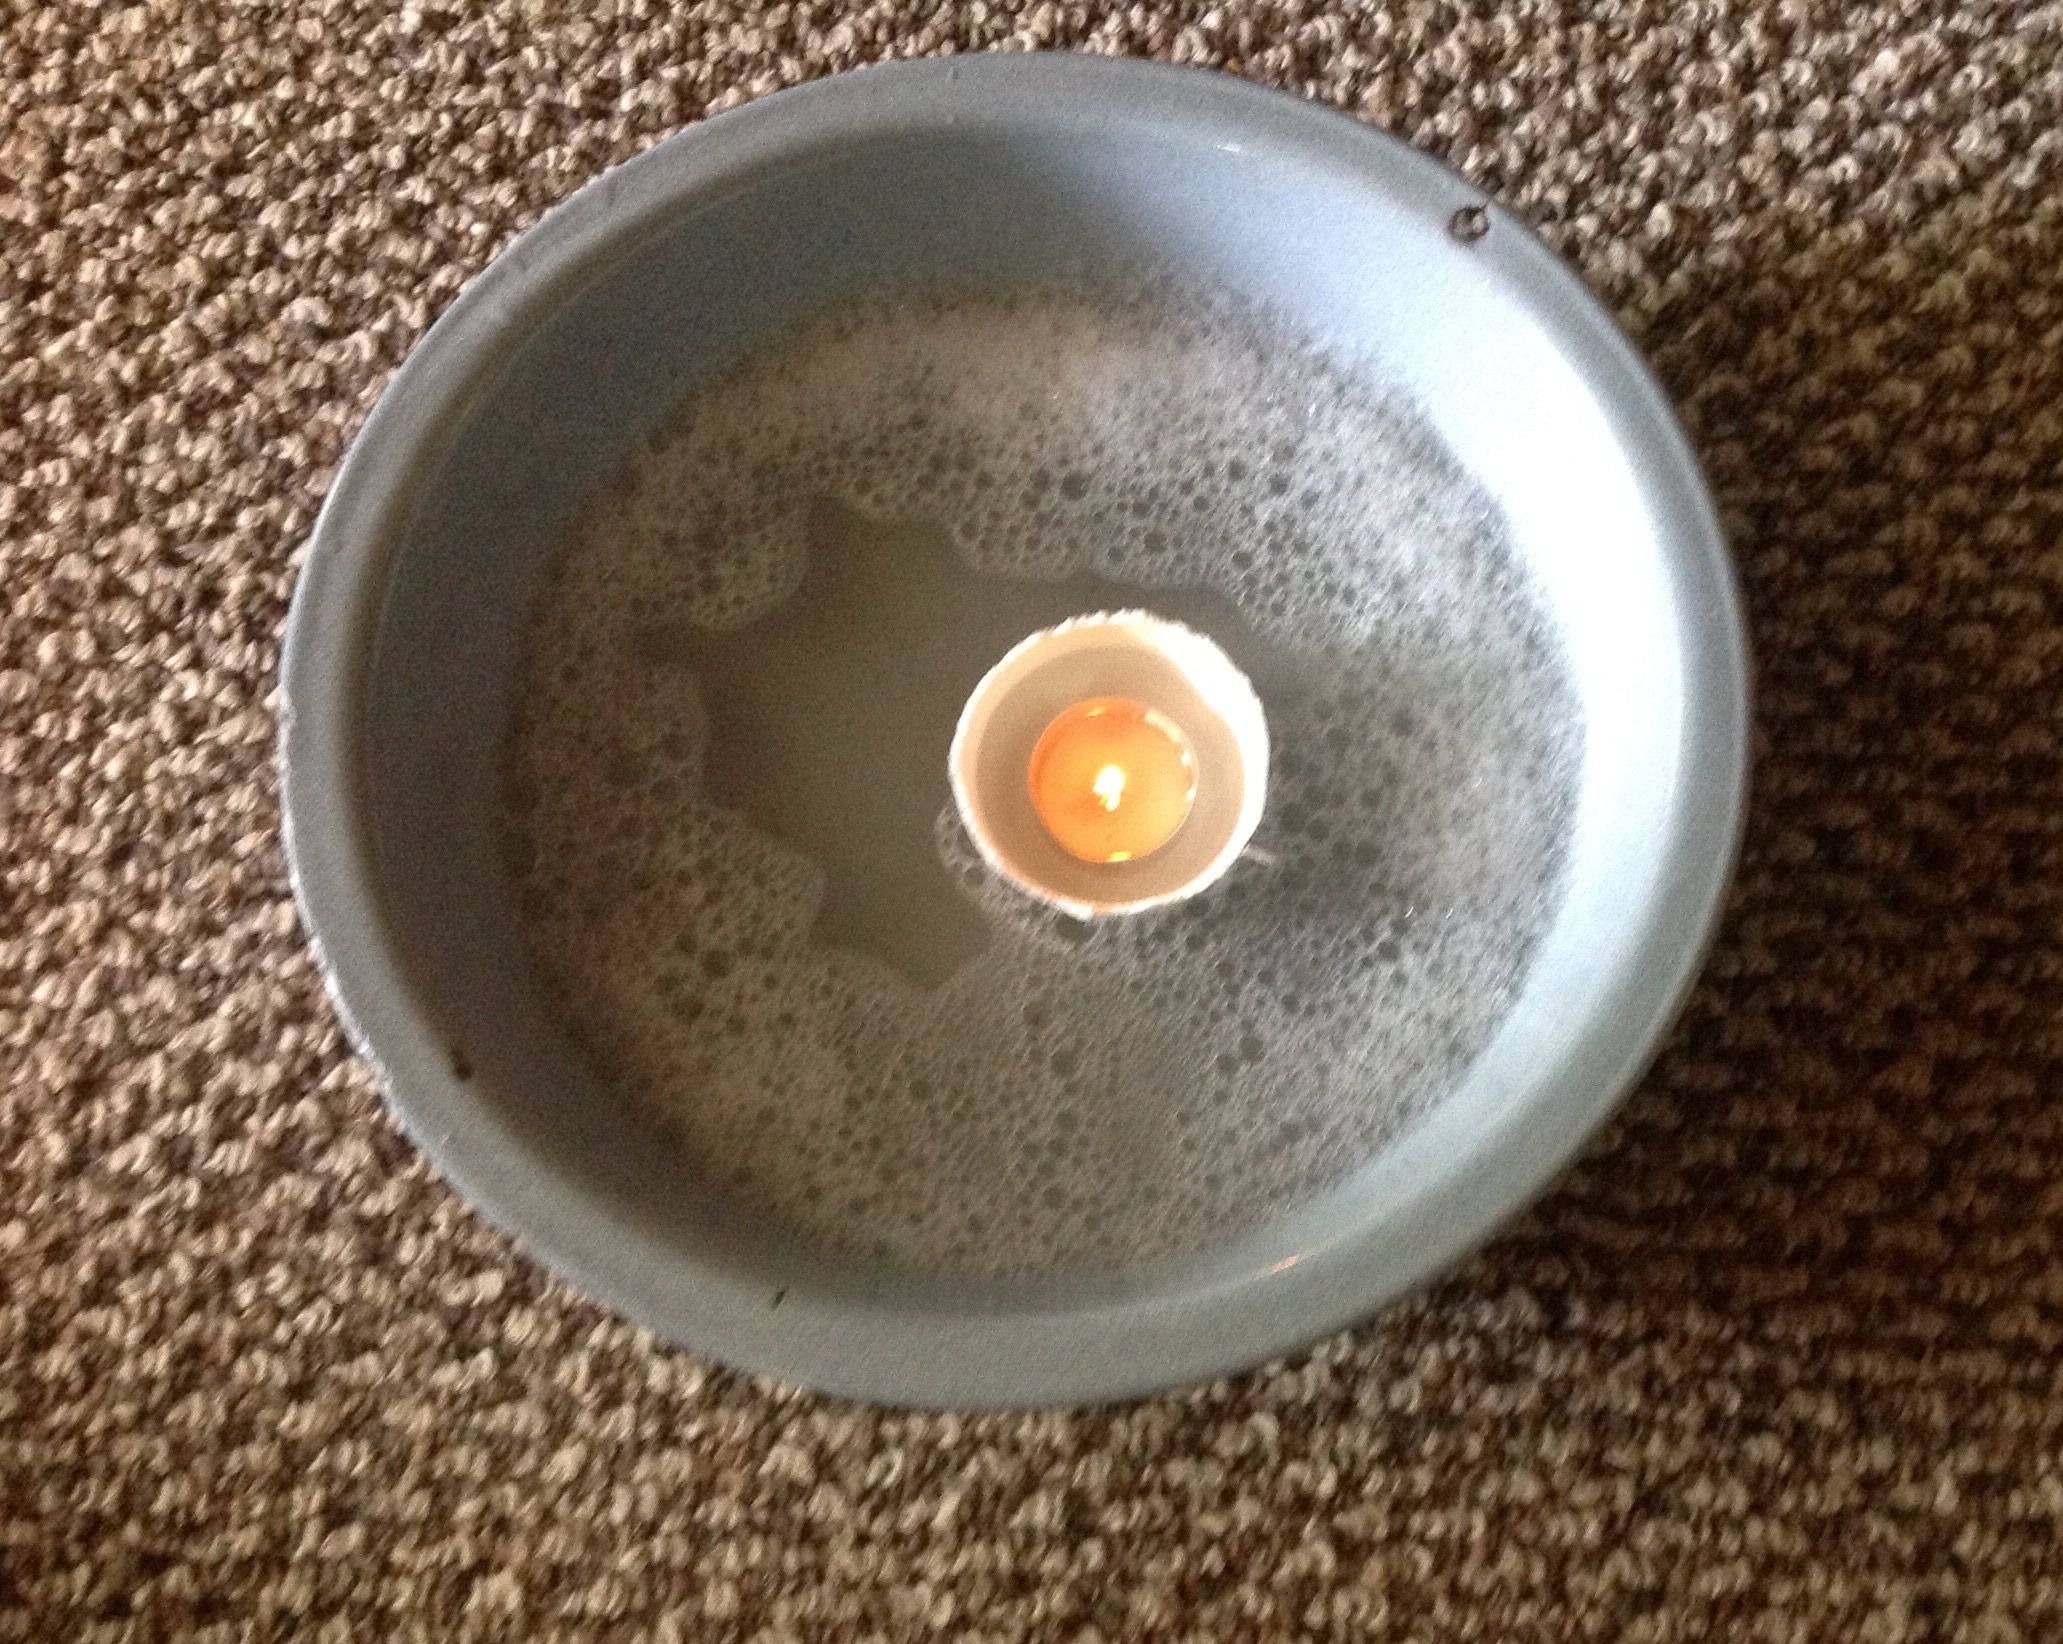 To eradicate fleas from your home, float a lit tea candle